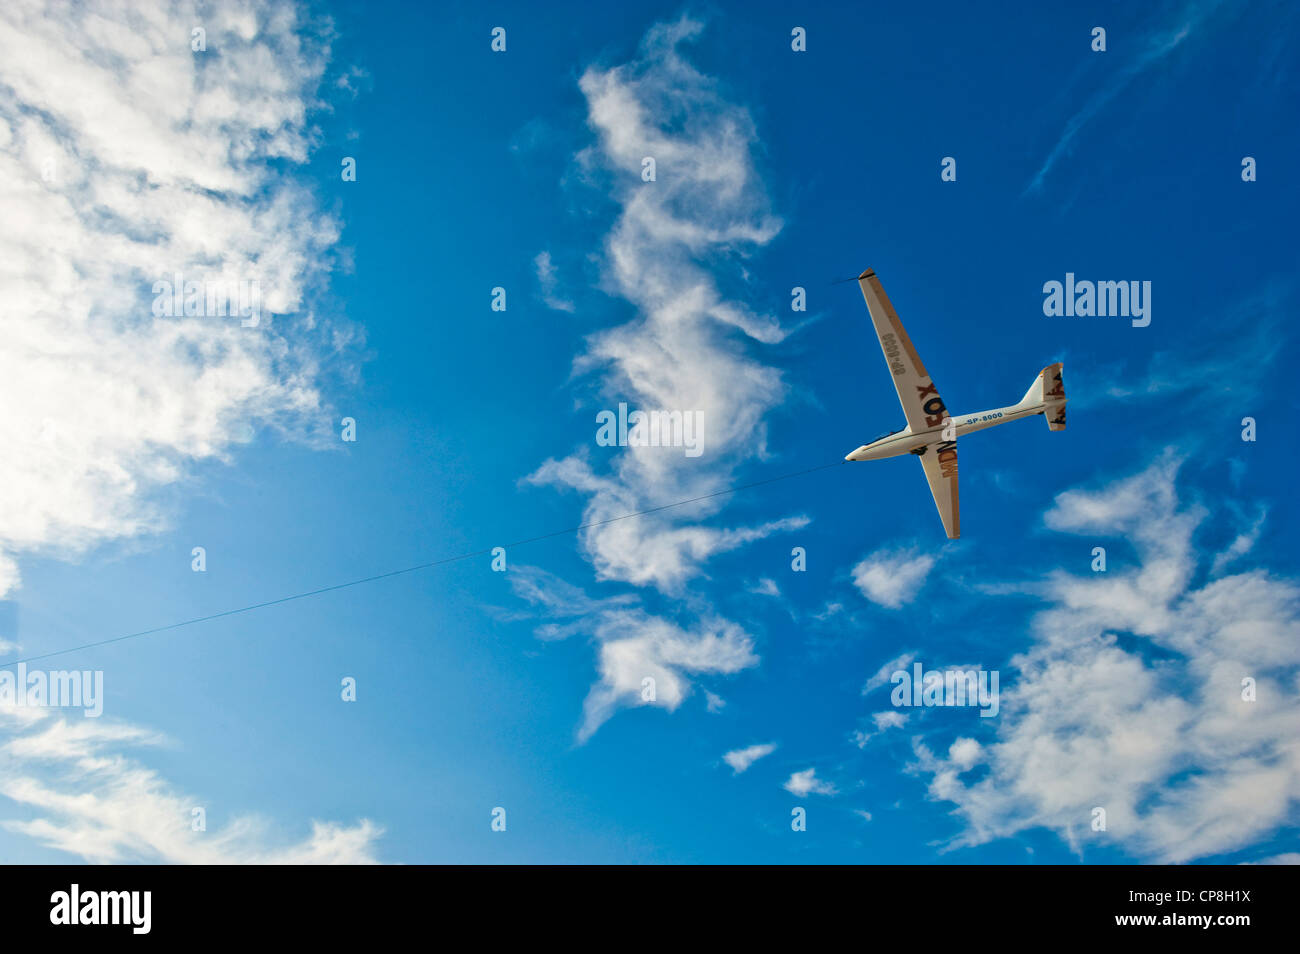 Europe Italy Piedmont Turin  airport of Collegno Word Air Games 2009 glider in flight - Stock Image